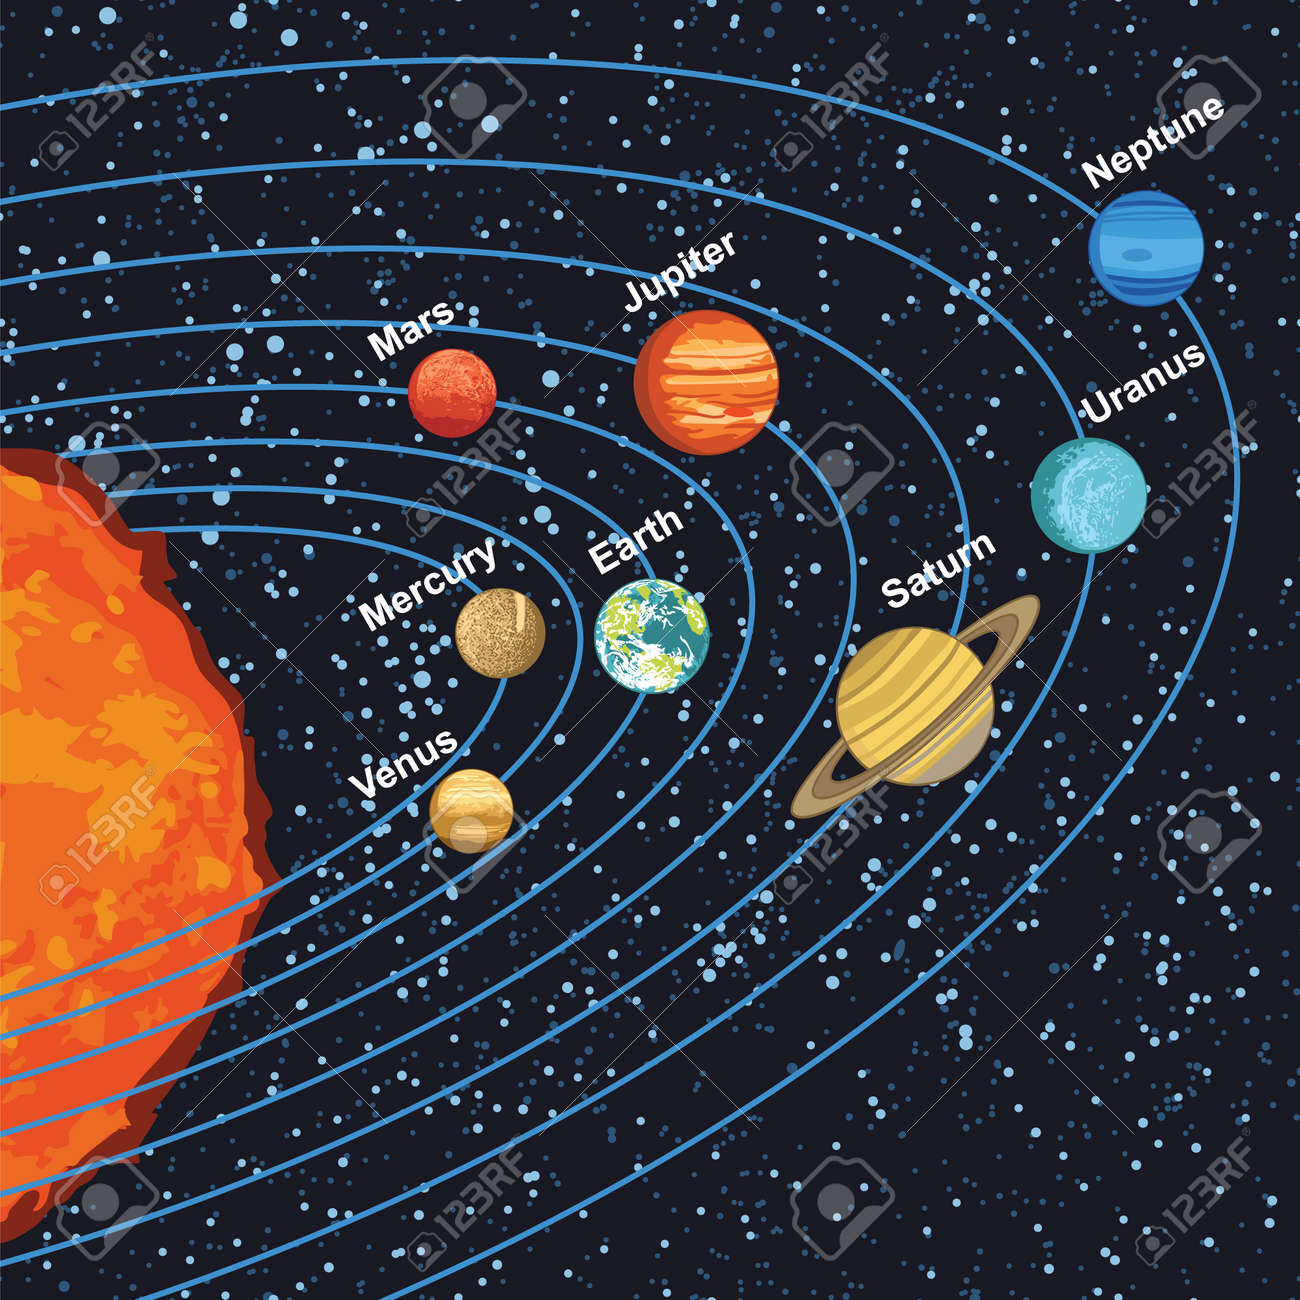 illustration of solar system showing planets around sun - 36422312